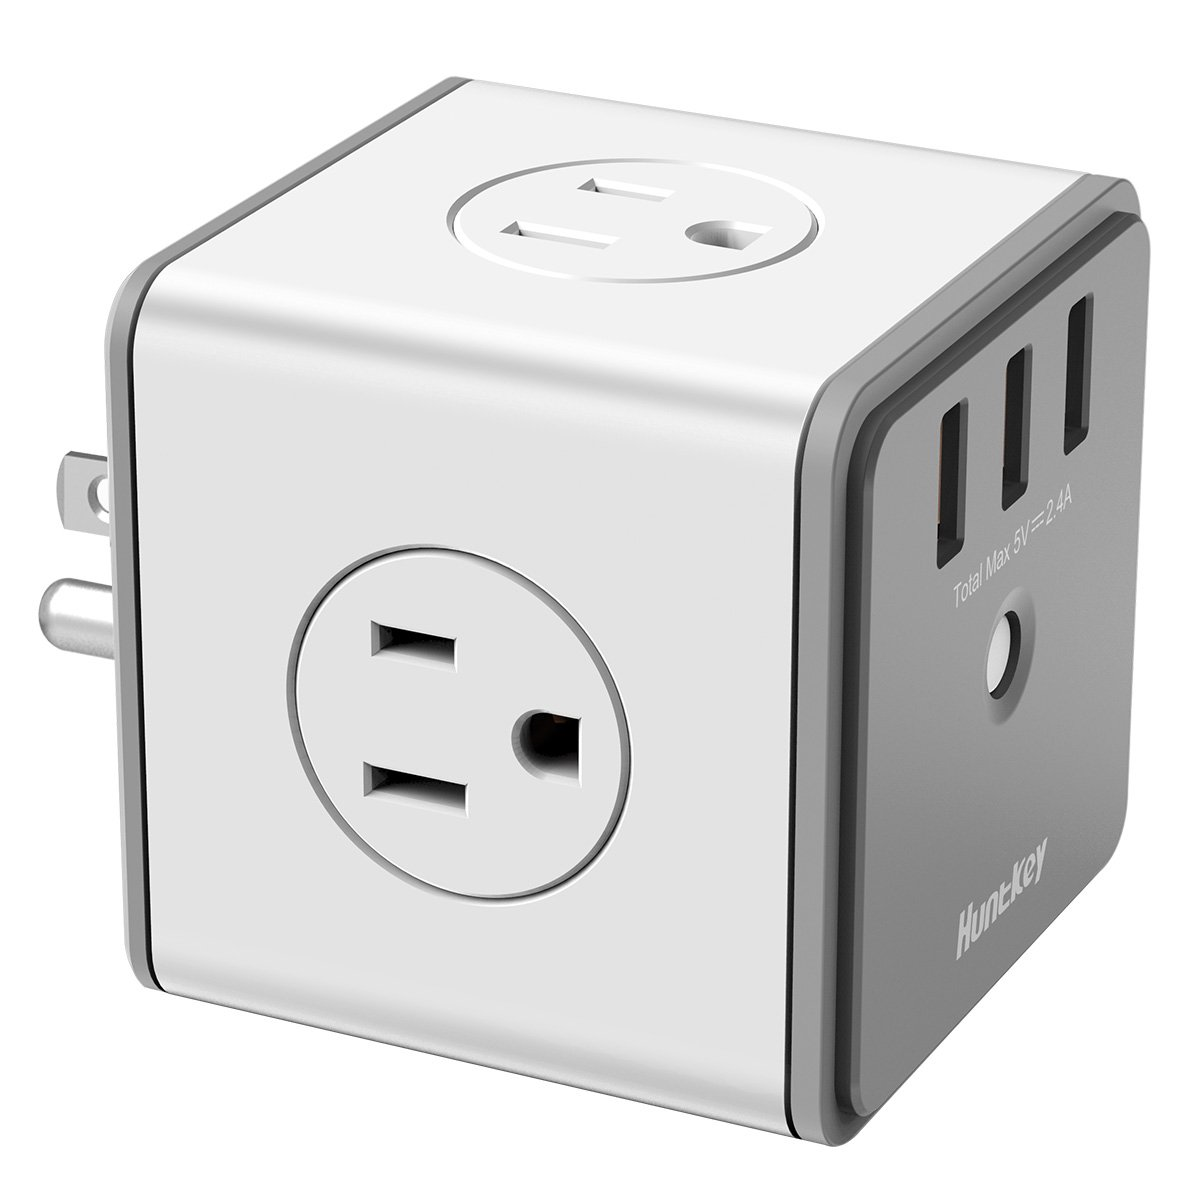 Huntkey Cubic Surge Protector USB Wall Adapter with 4 AC Outlets 3 USB Charging Ports (SMC007)